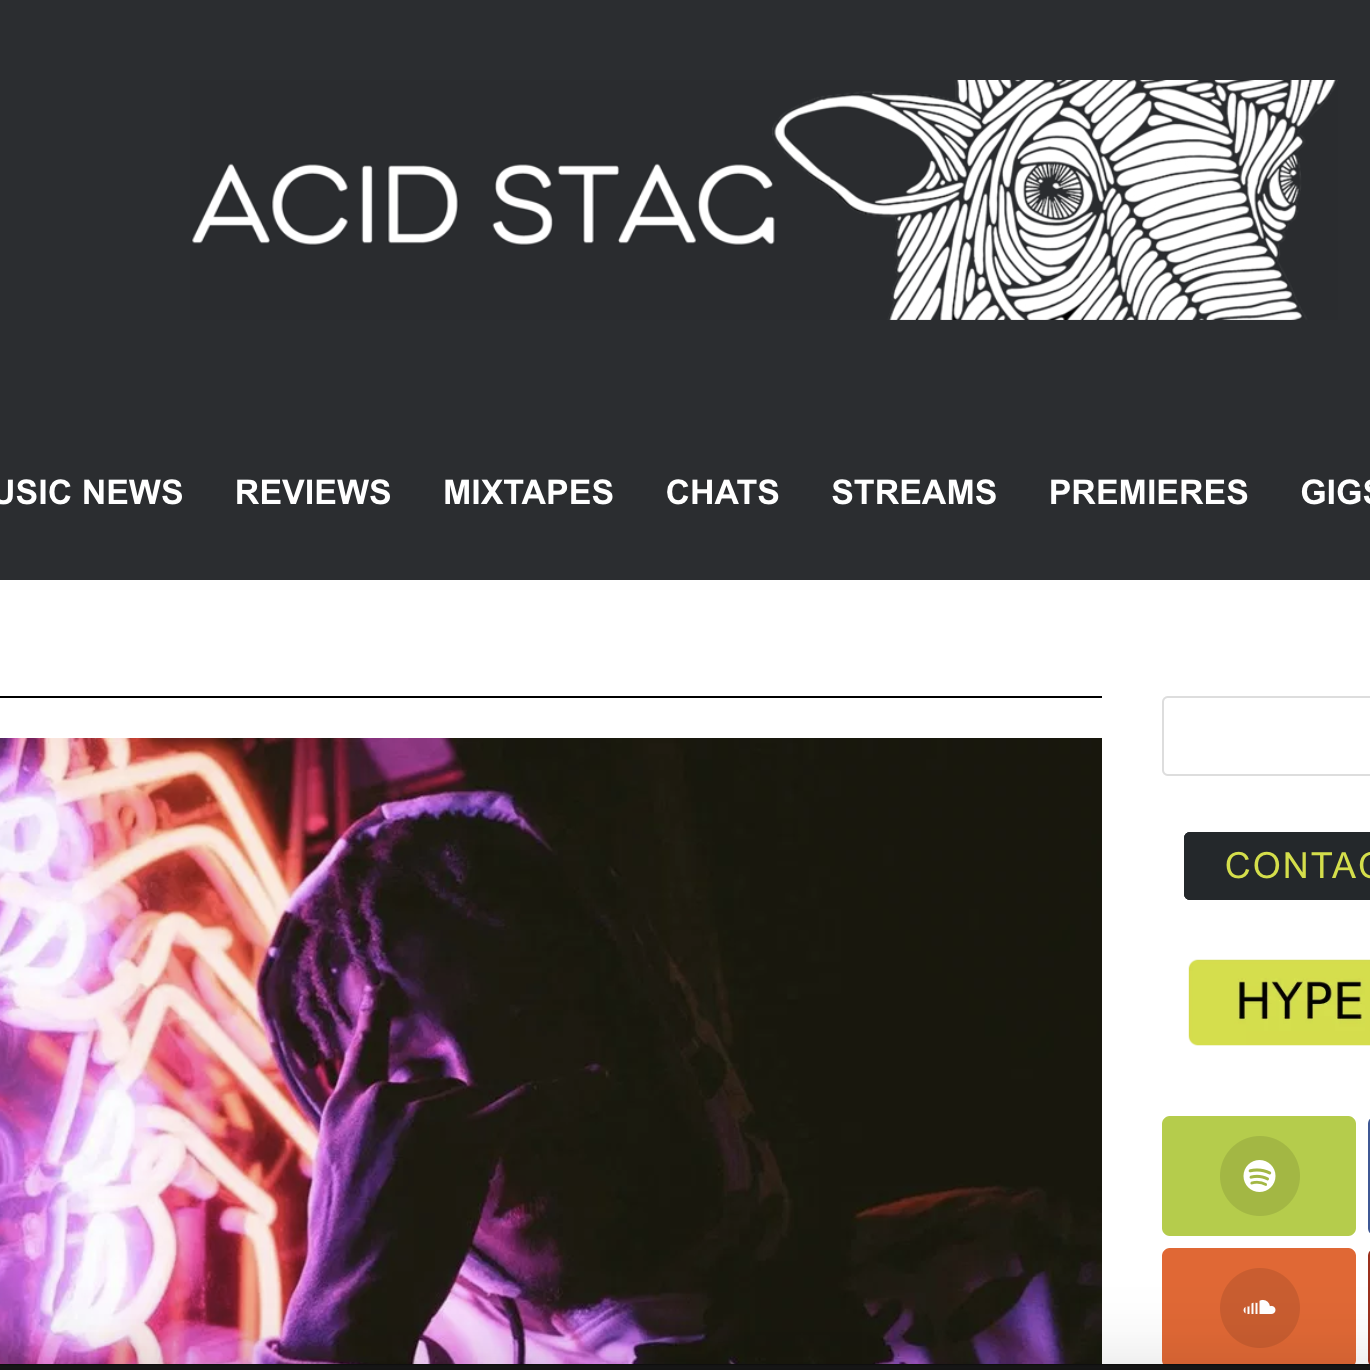 Acid Stag - October 9th 2018